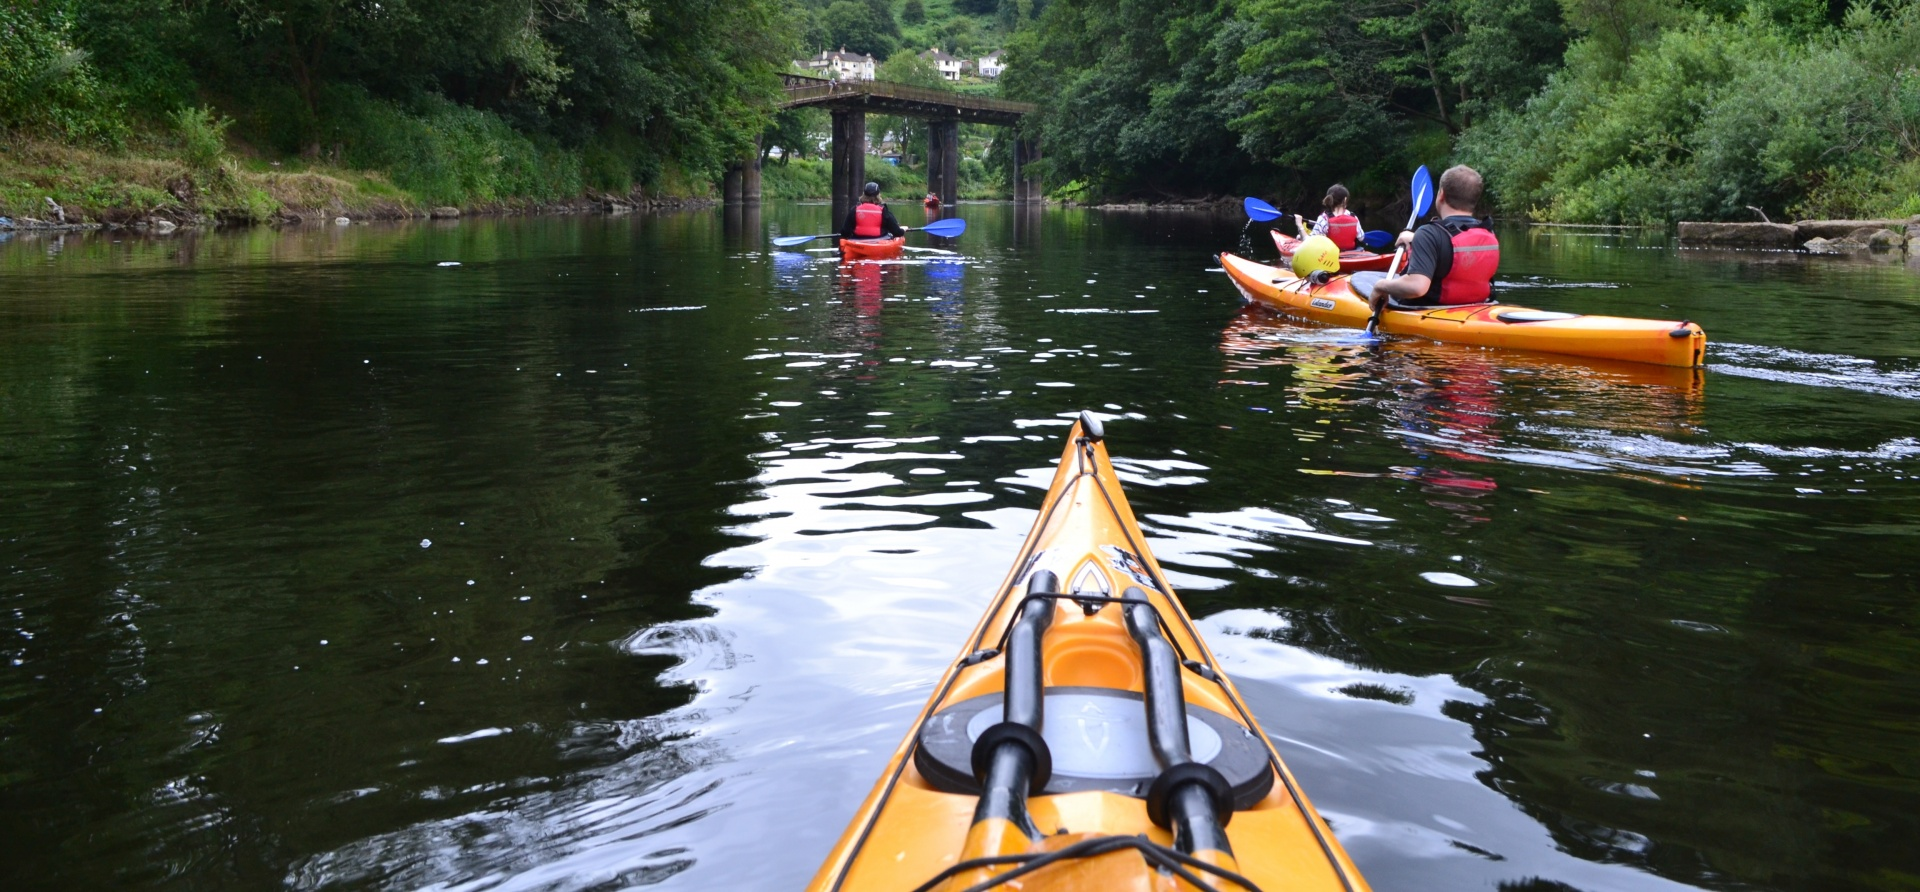 Full Day Kayaking Experience on the River Wye, Gloucestershire